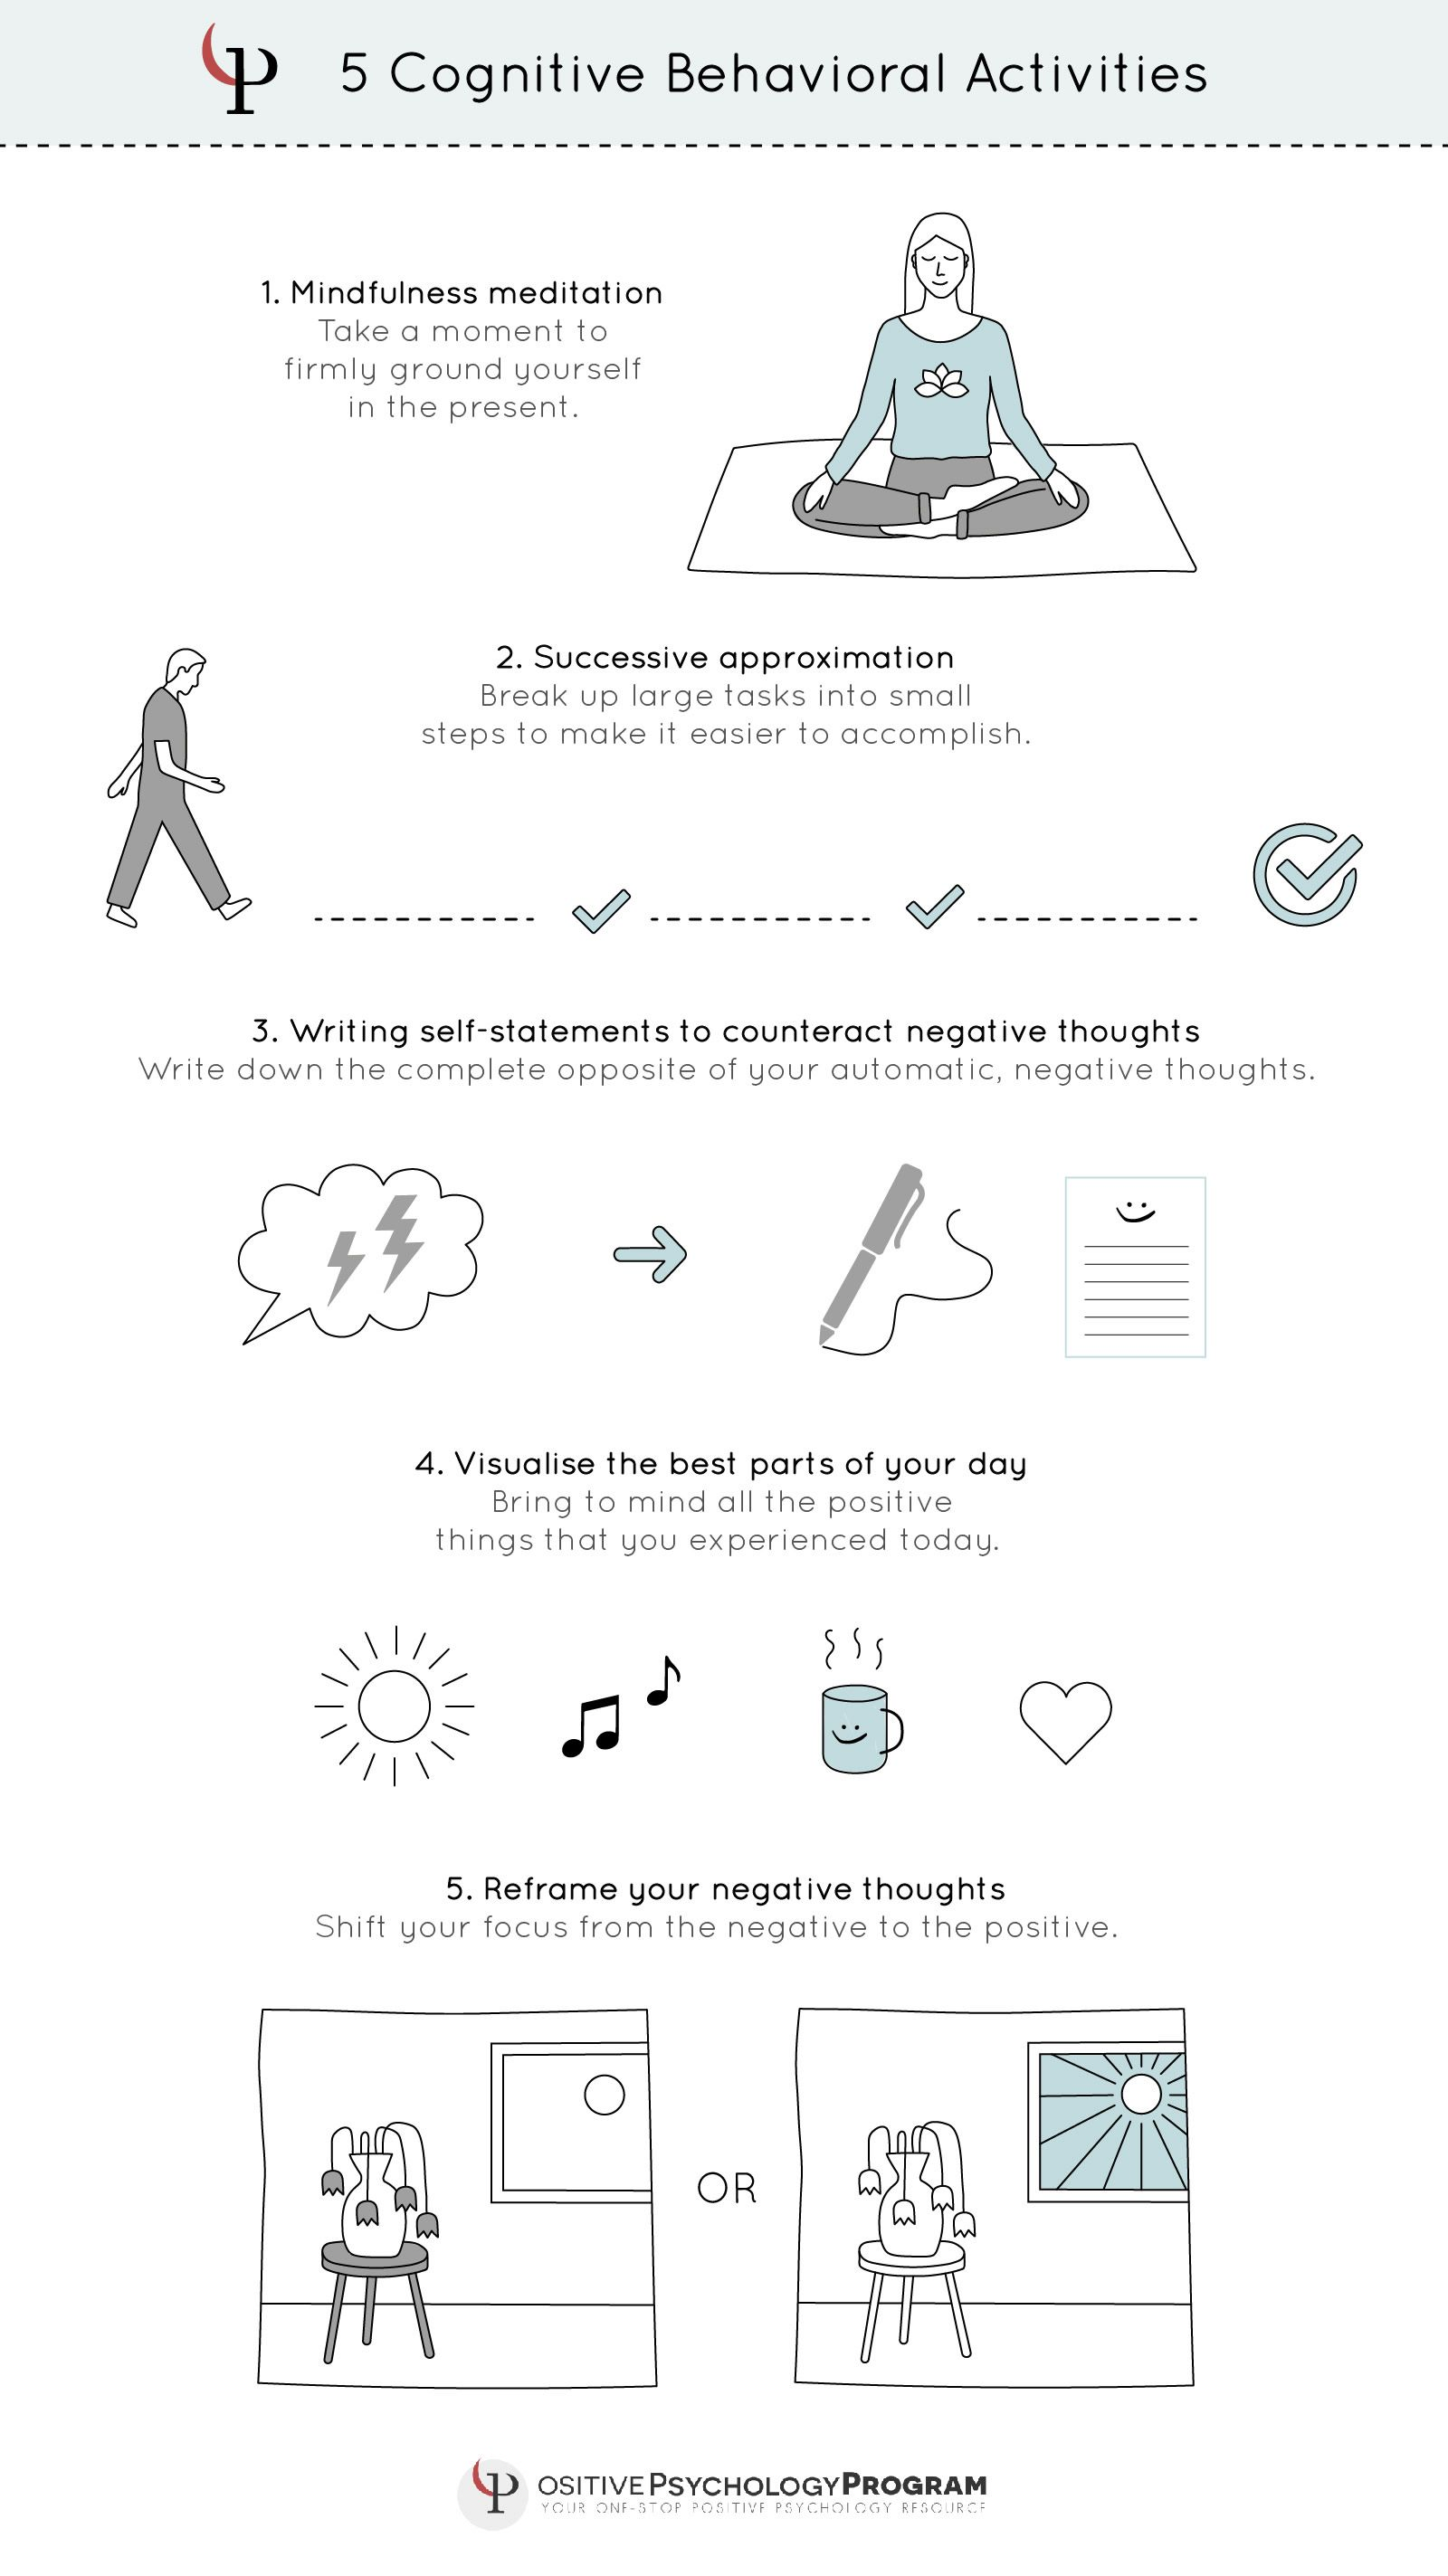 5 Cognitive Behavioral Activities